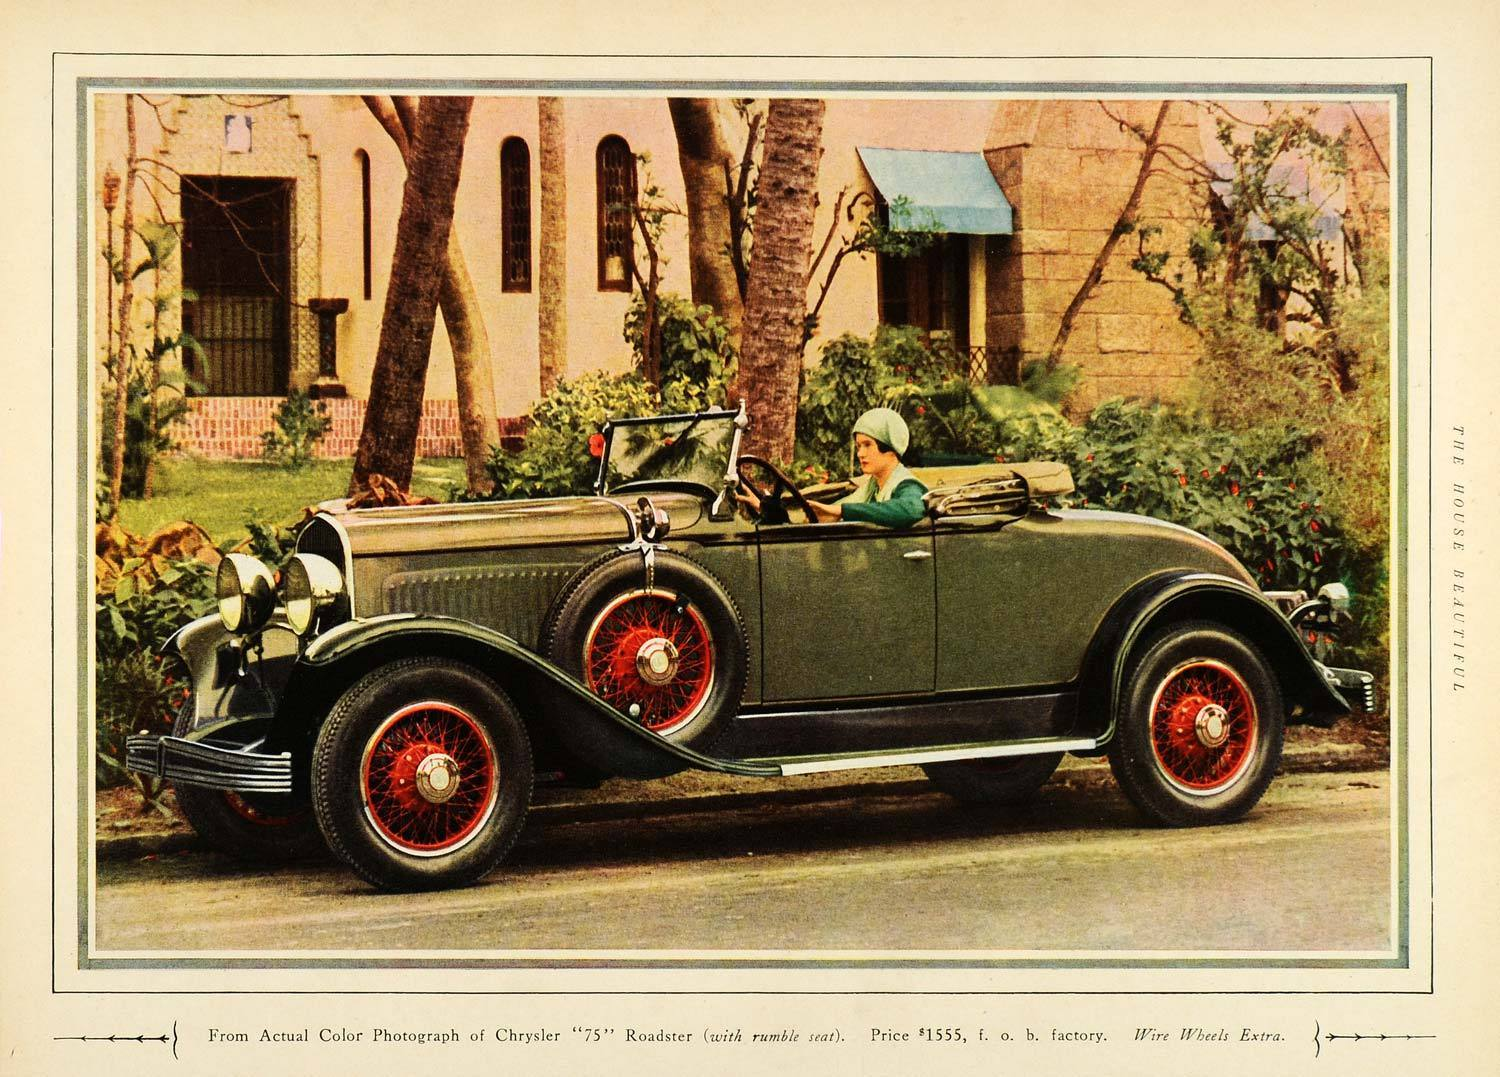 1929 Chrysler Series 75 Roadster